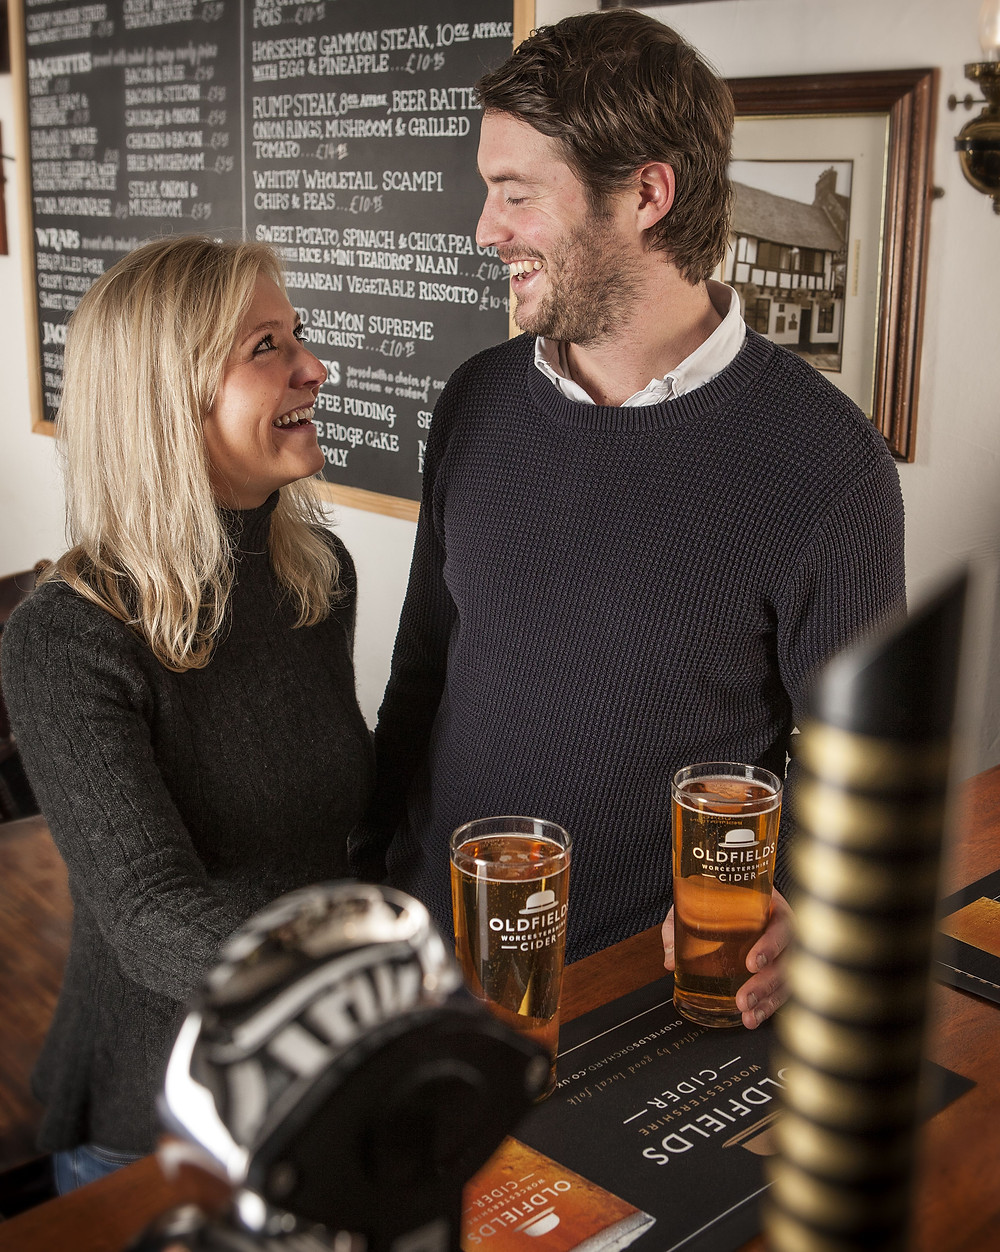 Enjoy oldfields at your local pub